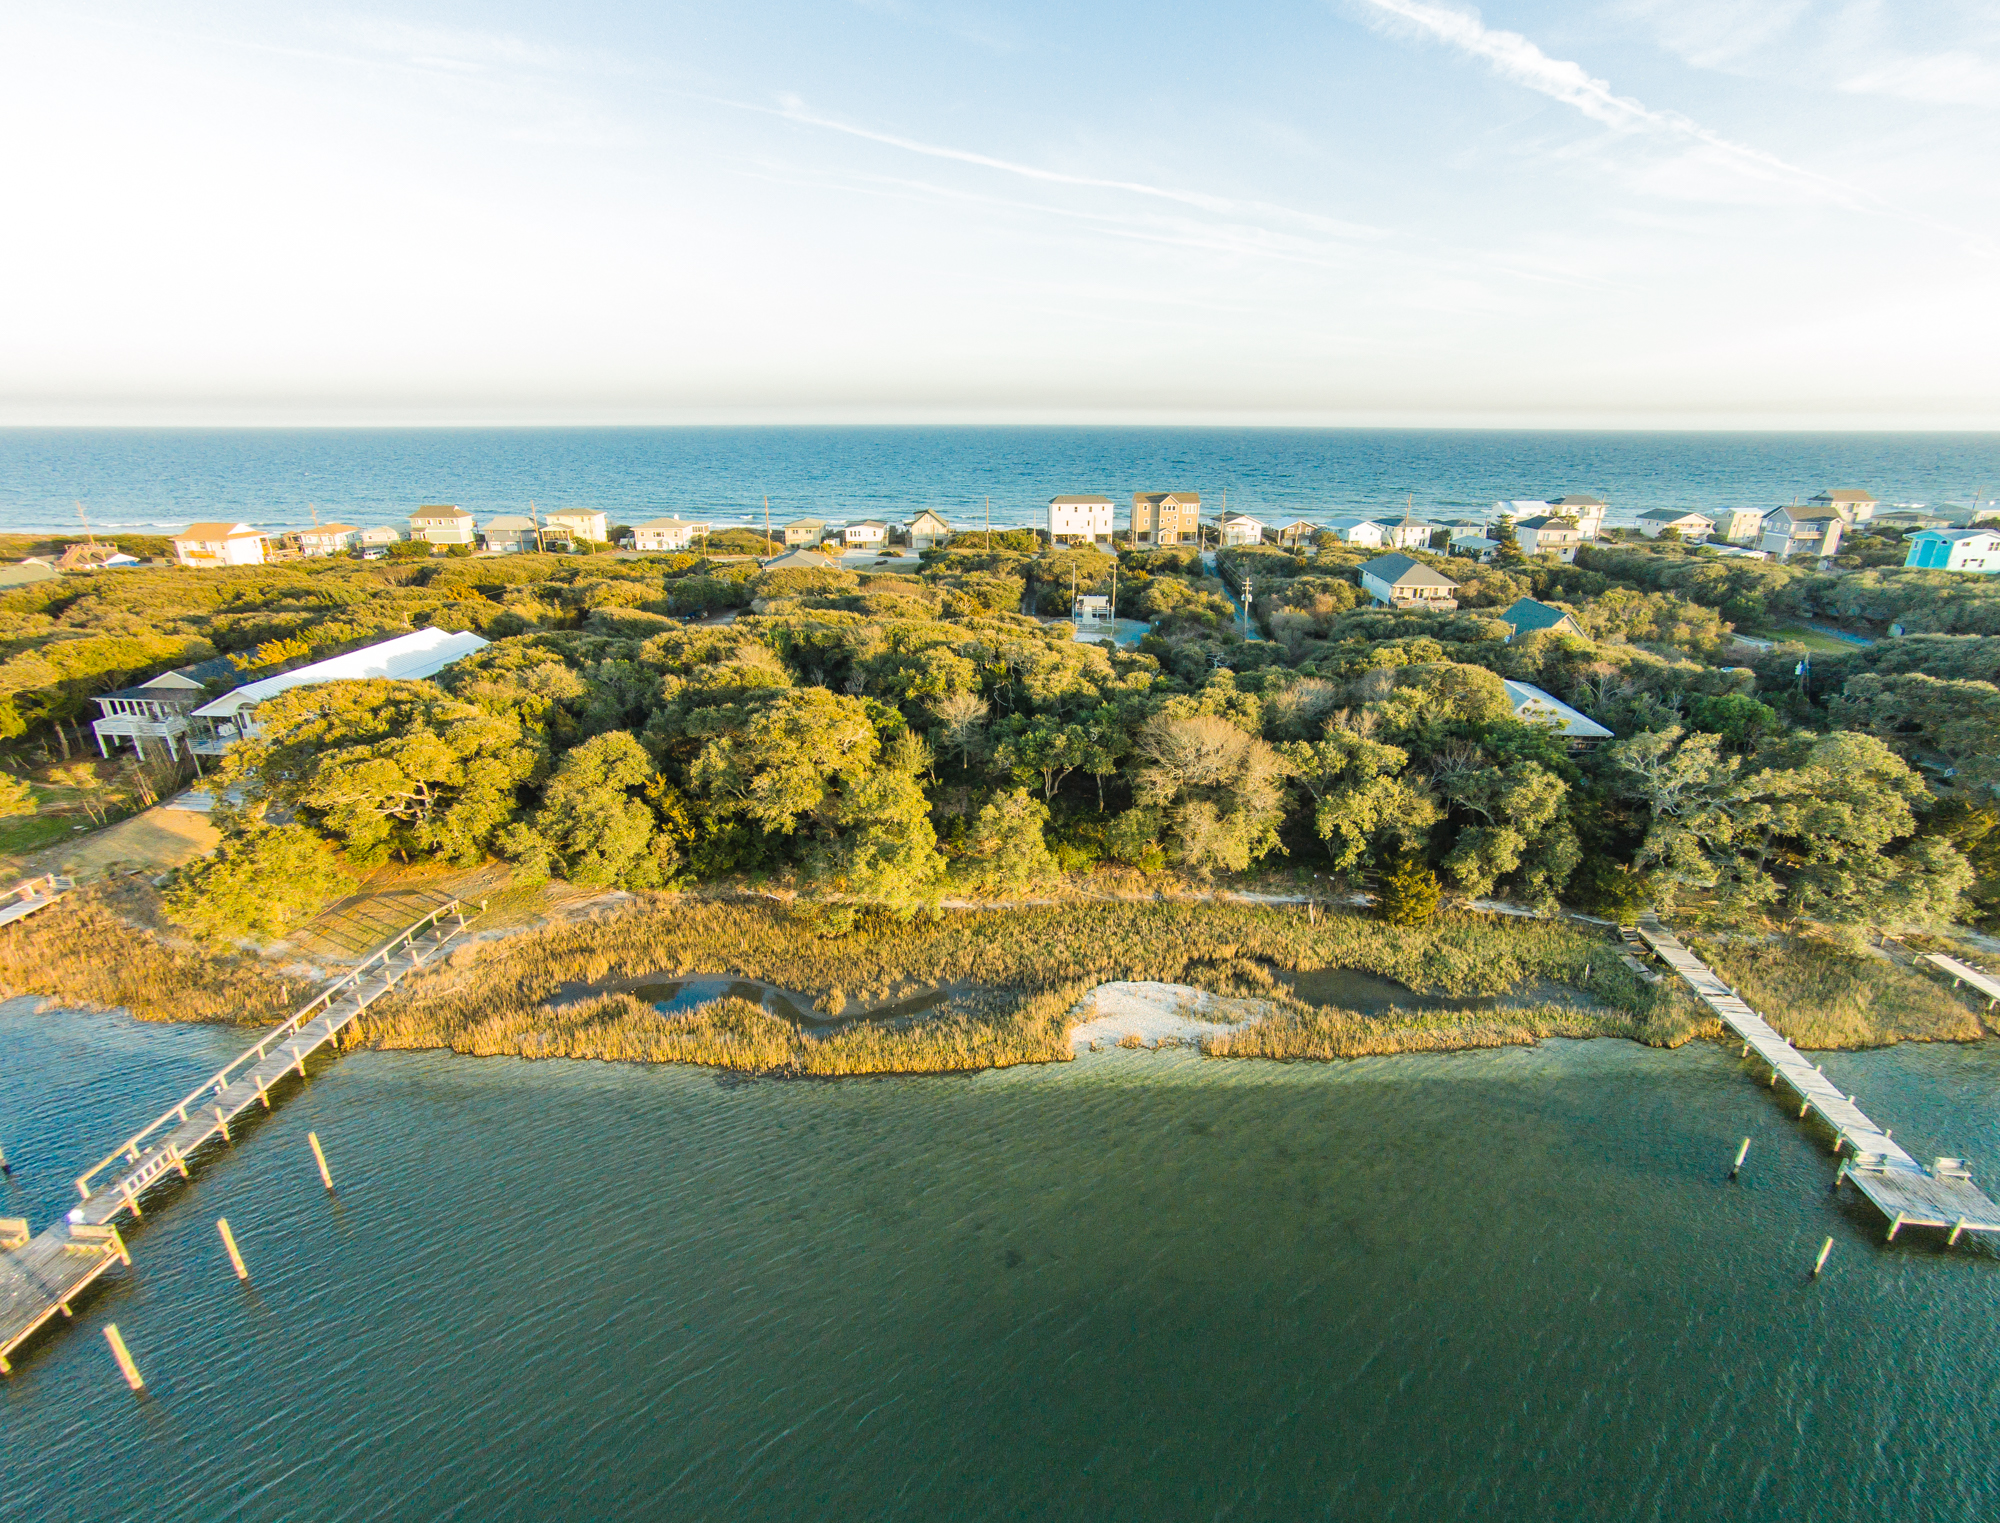 Land for Sale at Soundfront Lot TBD-2 N Anderson Blvd Topsail Beach, North Carolina, 28445 United States